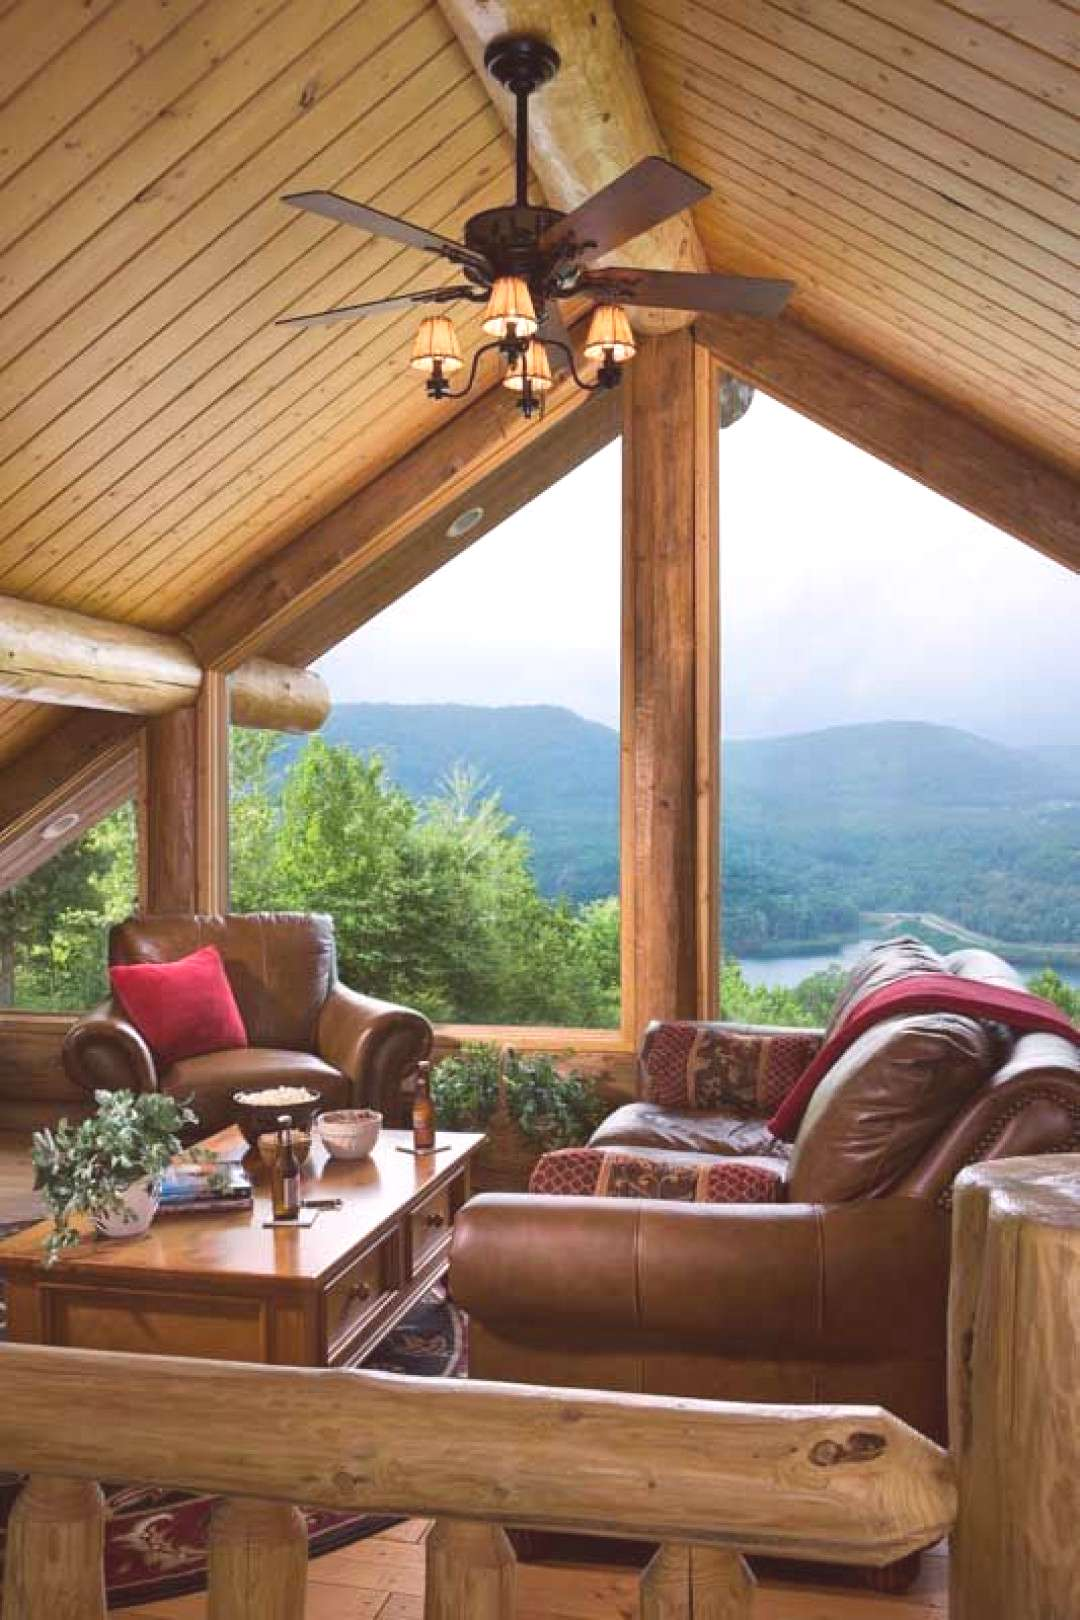 An Ill Wind Blows Much Good A Handcrafted Pennsylvania Log Home - The open loft was supposed to b